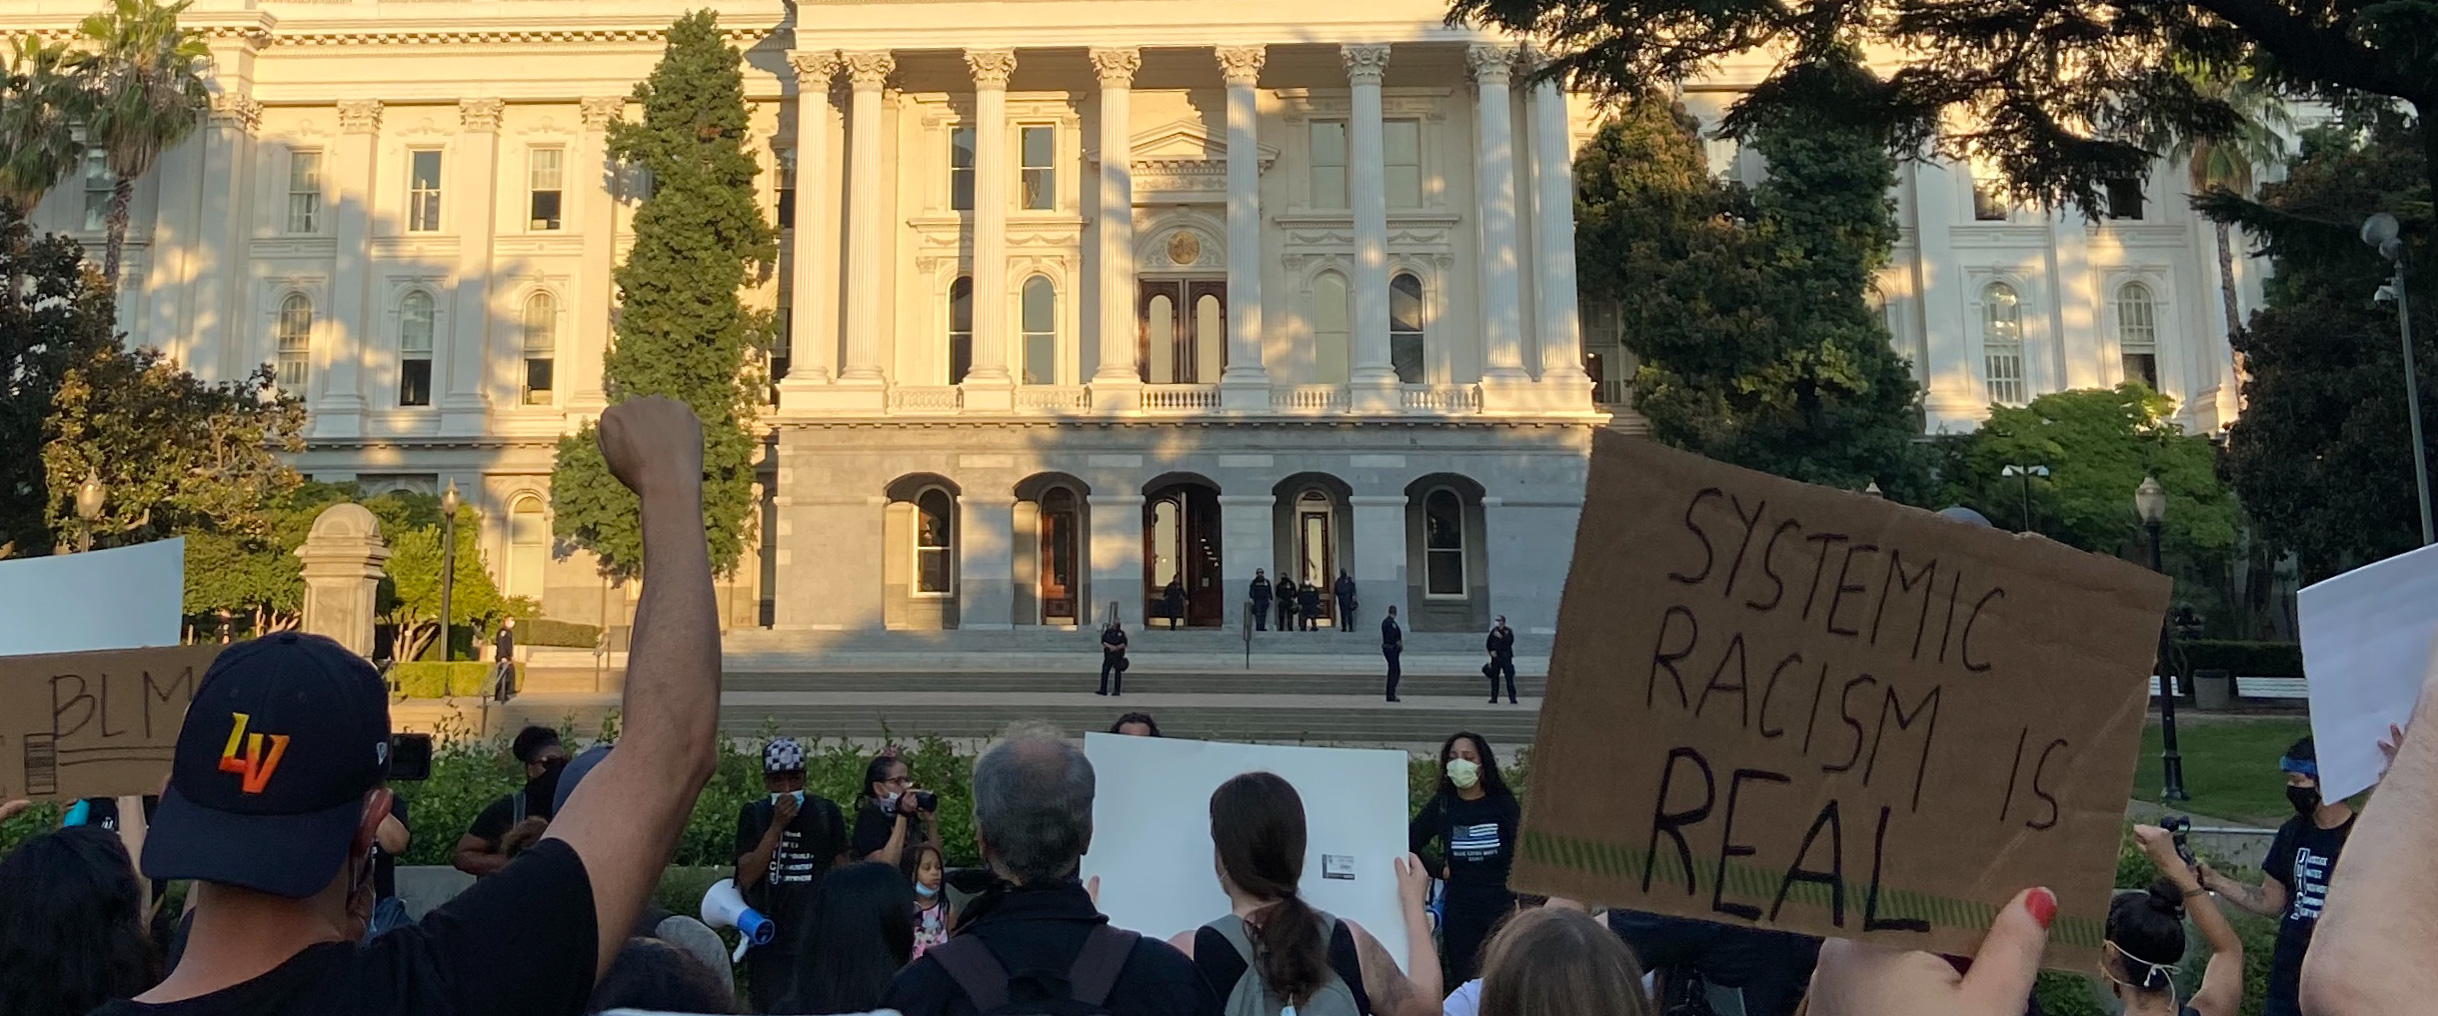 Protestors gathered outside the capitol building in Sacramento